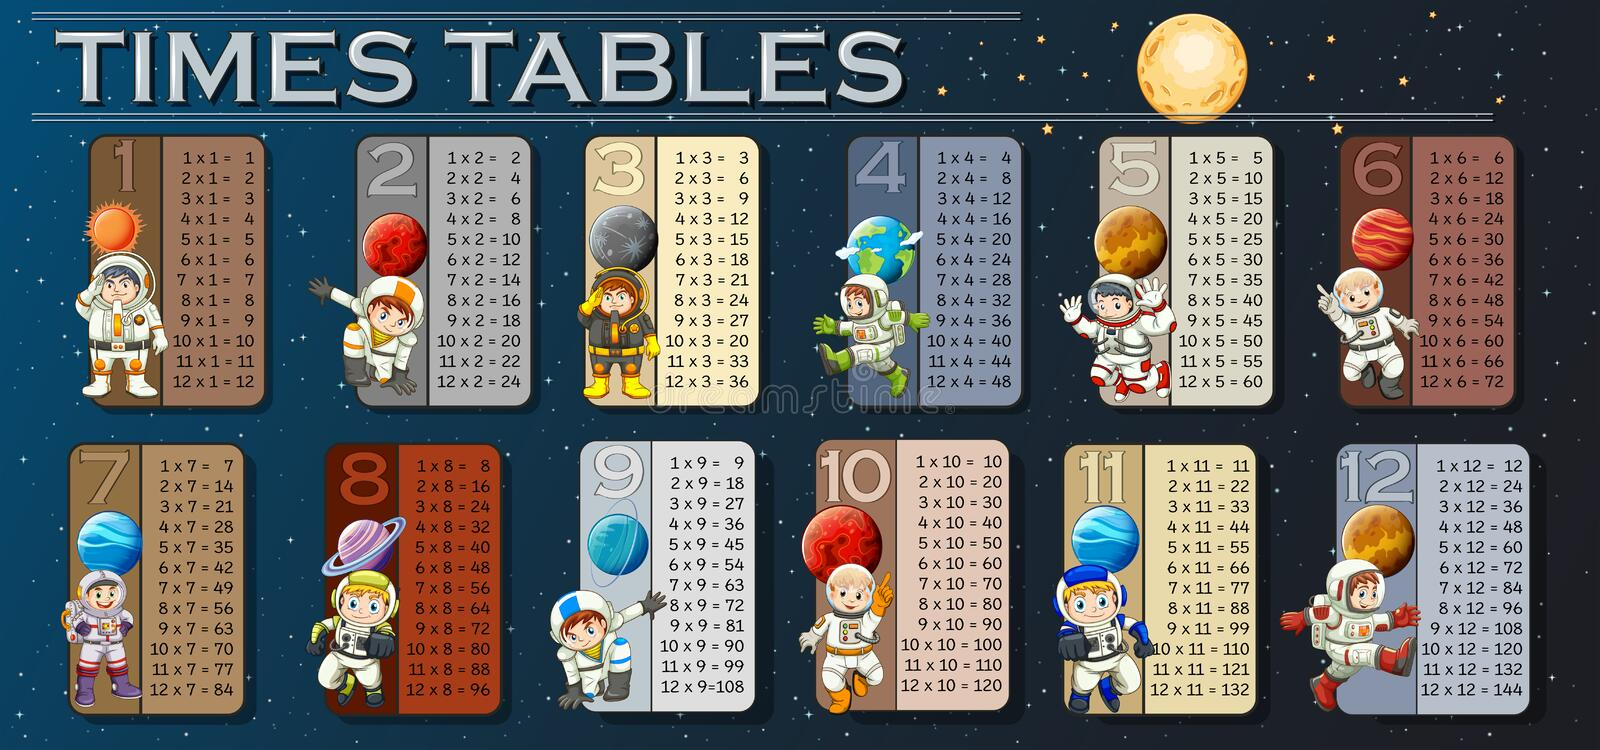 Times tables with astronauts in space background. Illustration royalty free illustration